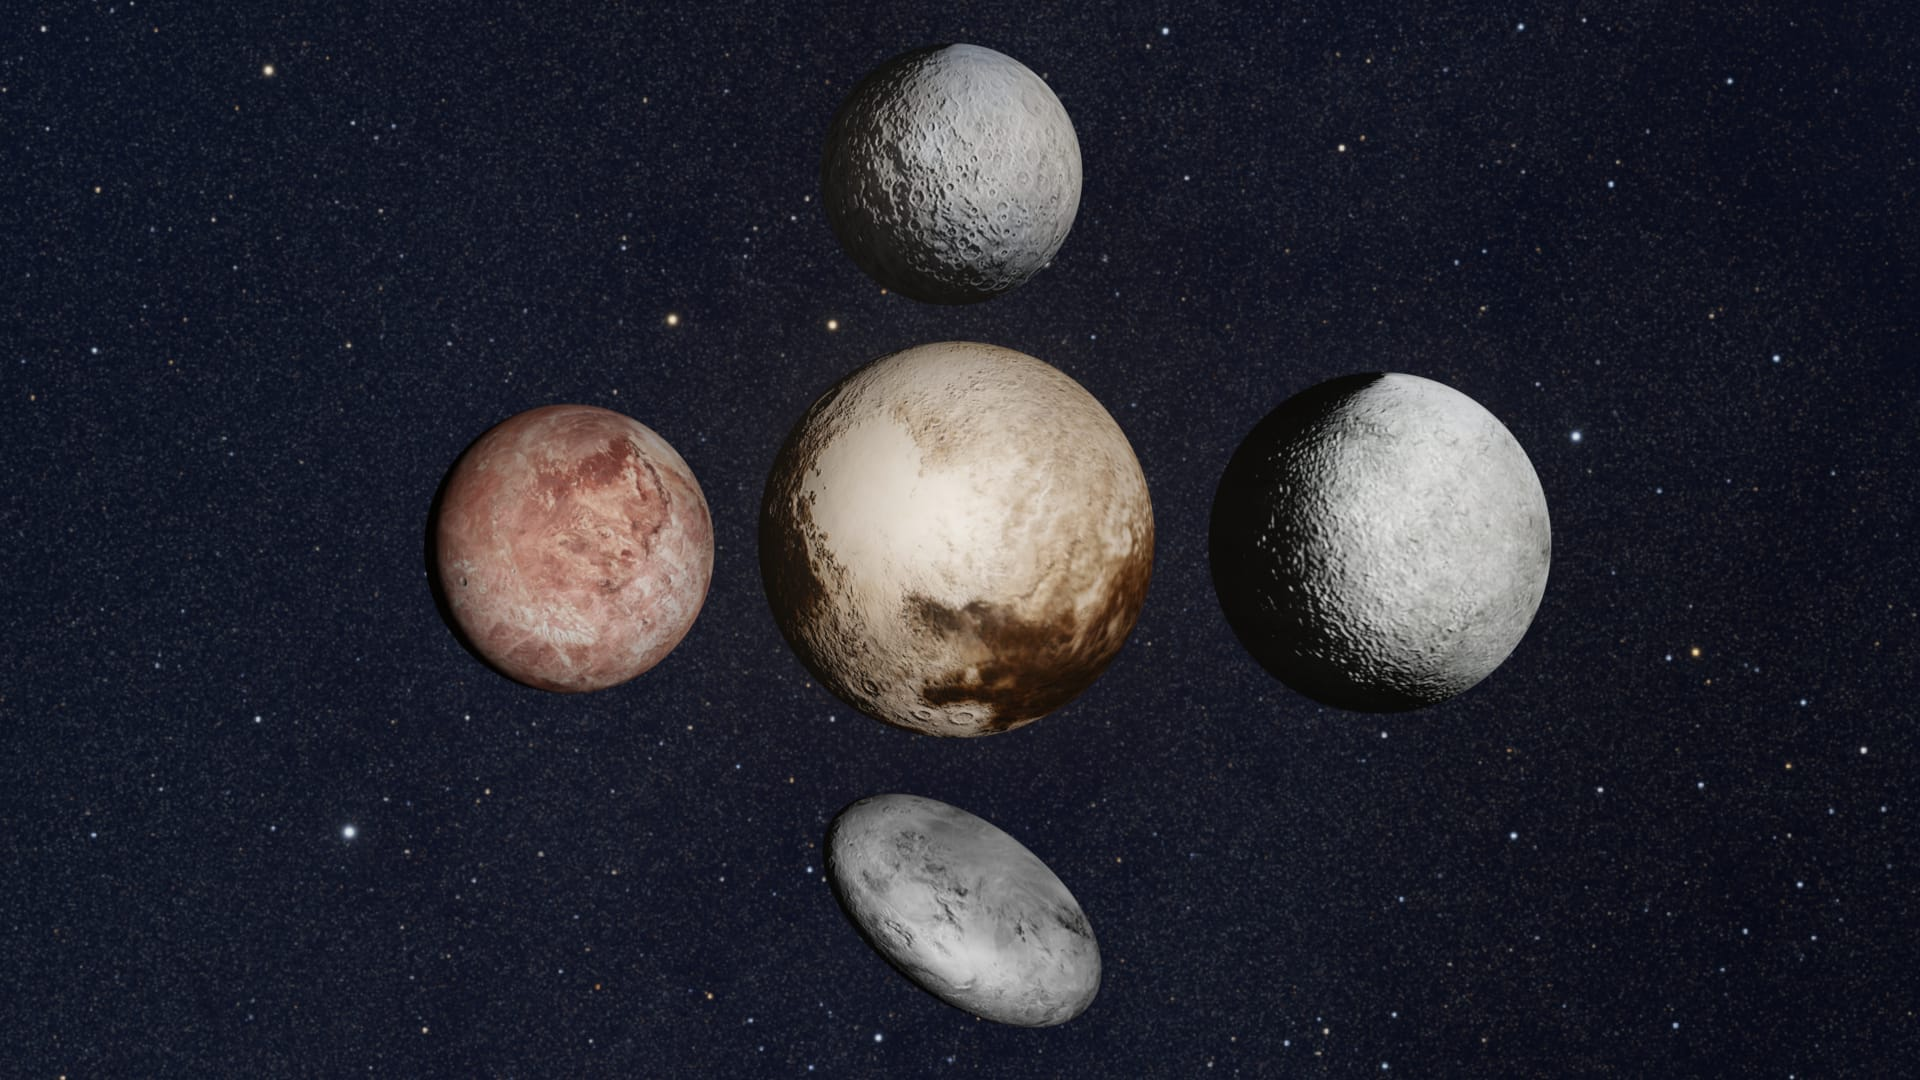 Dwarf planets joined together